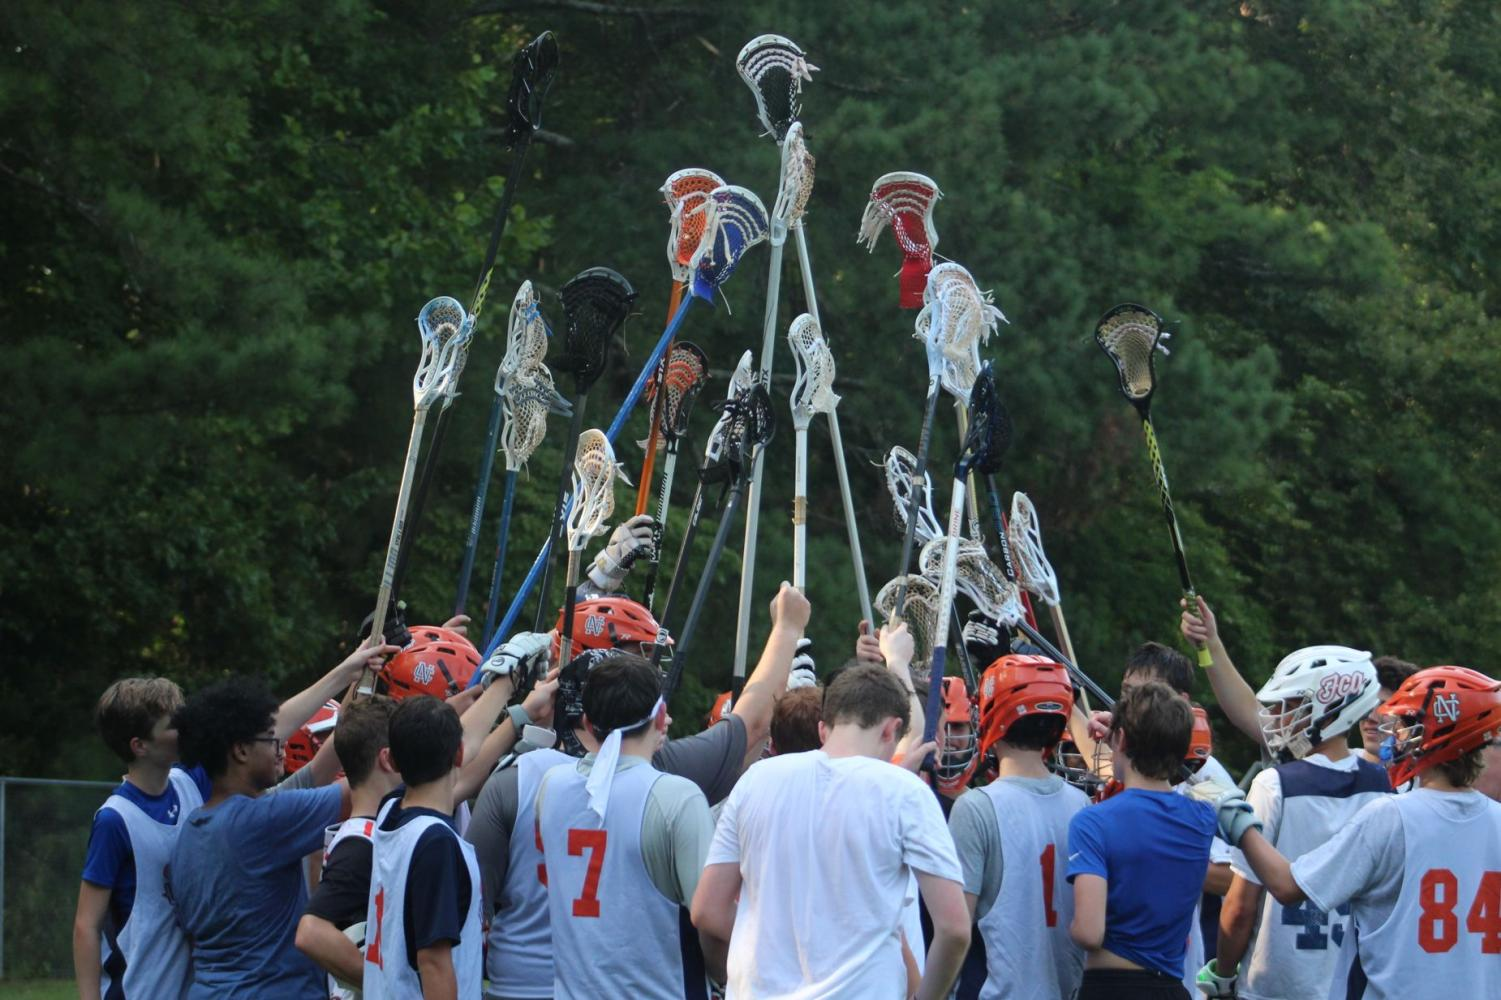 Boys Fall Lacrosse ends their last practice before going to their final tournament. The team leaves everything out on the field to prepare themselves for hard competition. The bittersweet end of fall lacrosse kicks off the beginning of spring lacrosse where teammates remain hopeful and excited for prosperity.